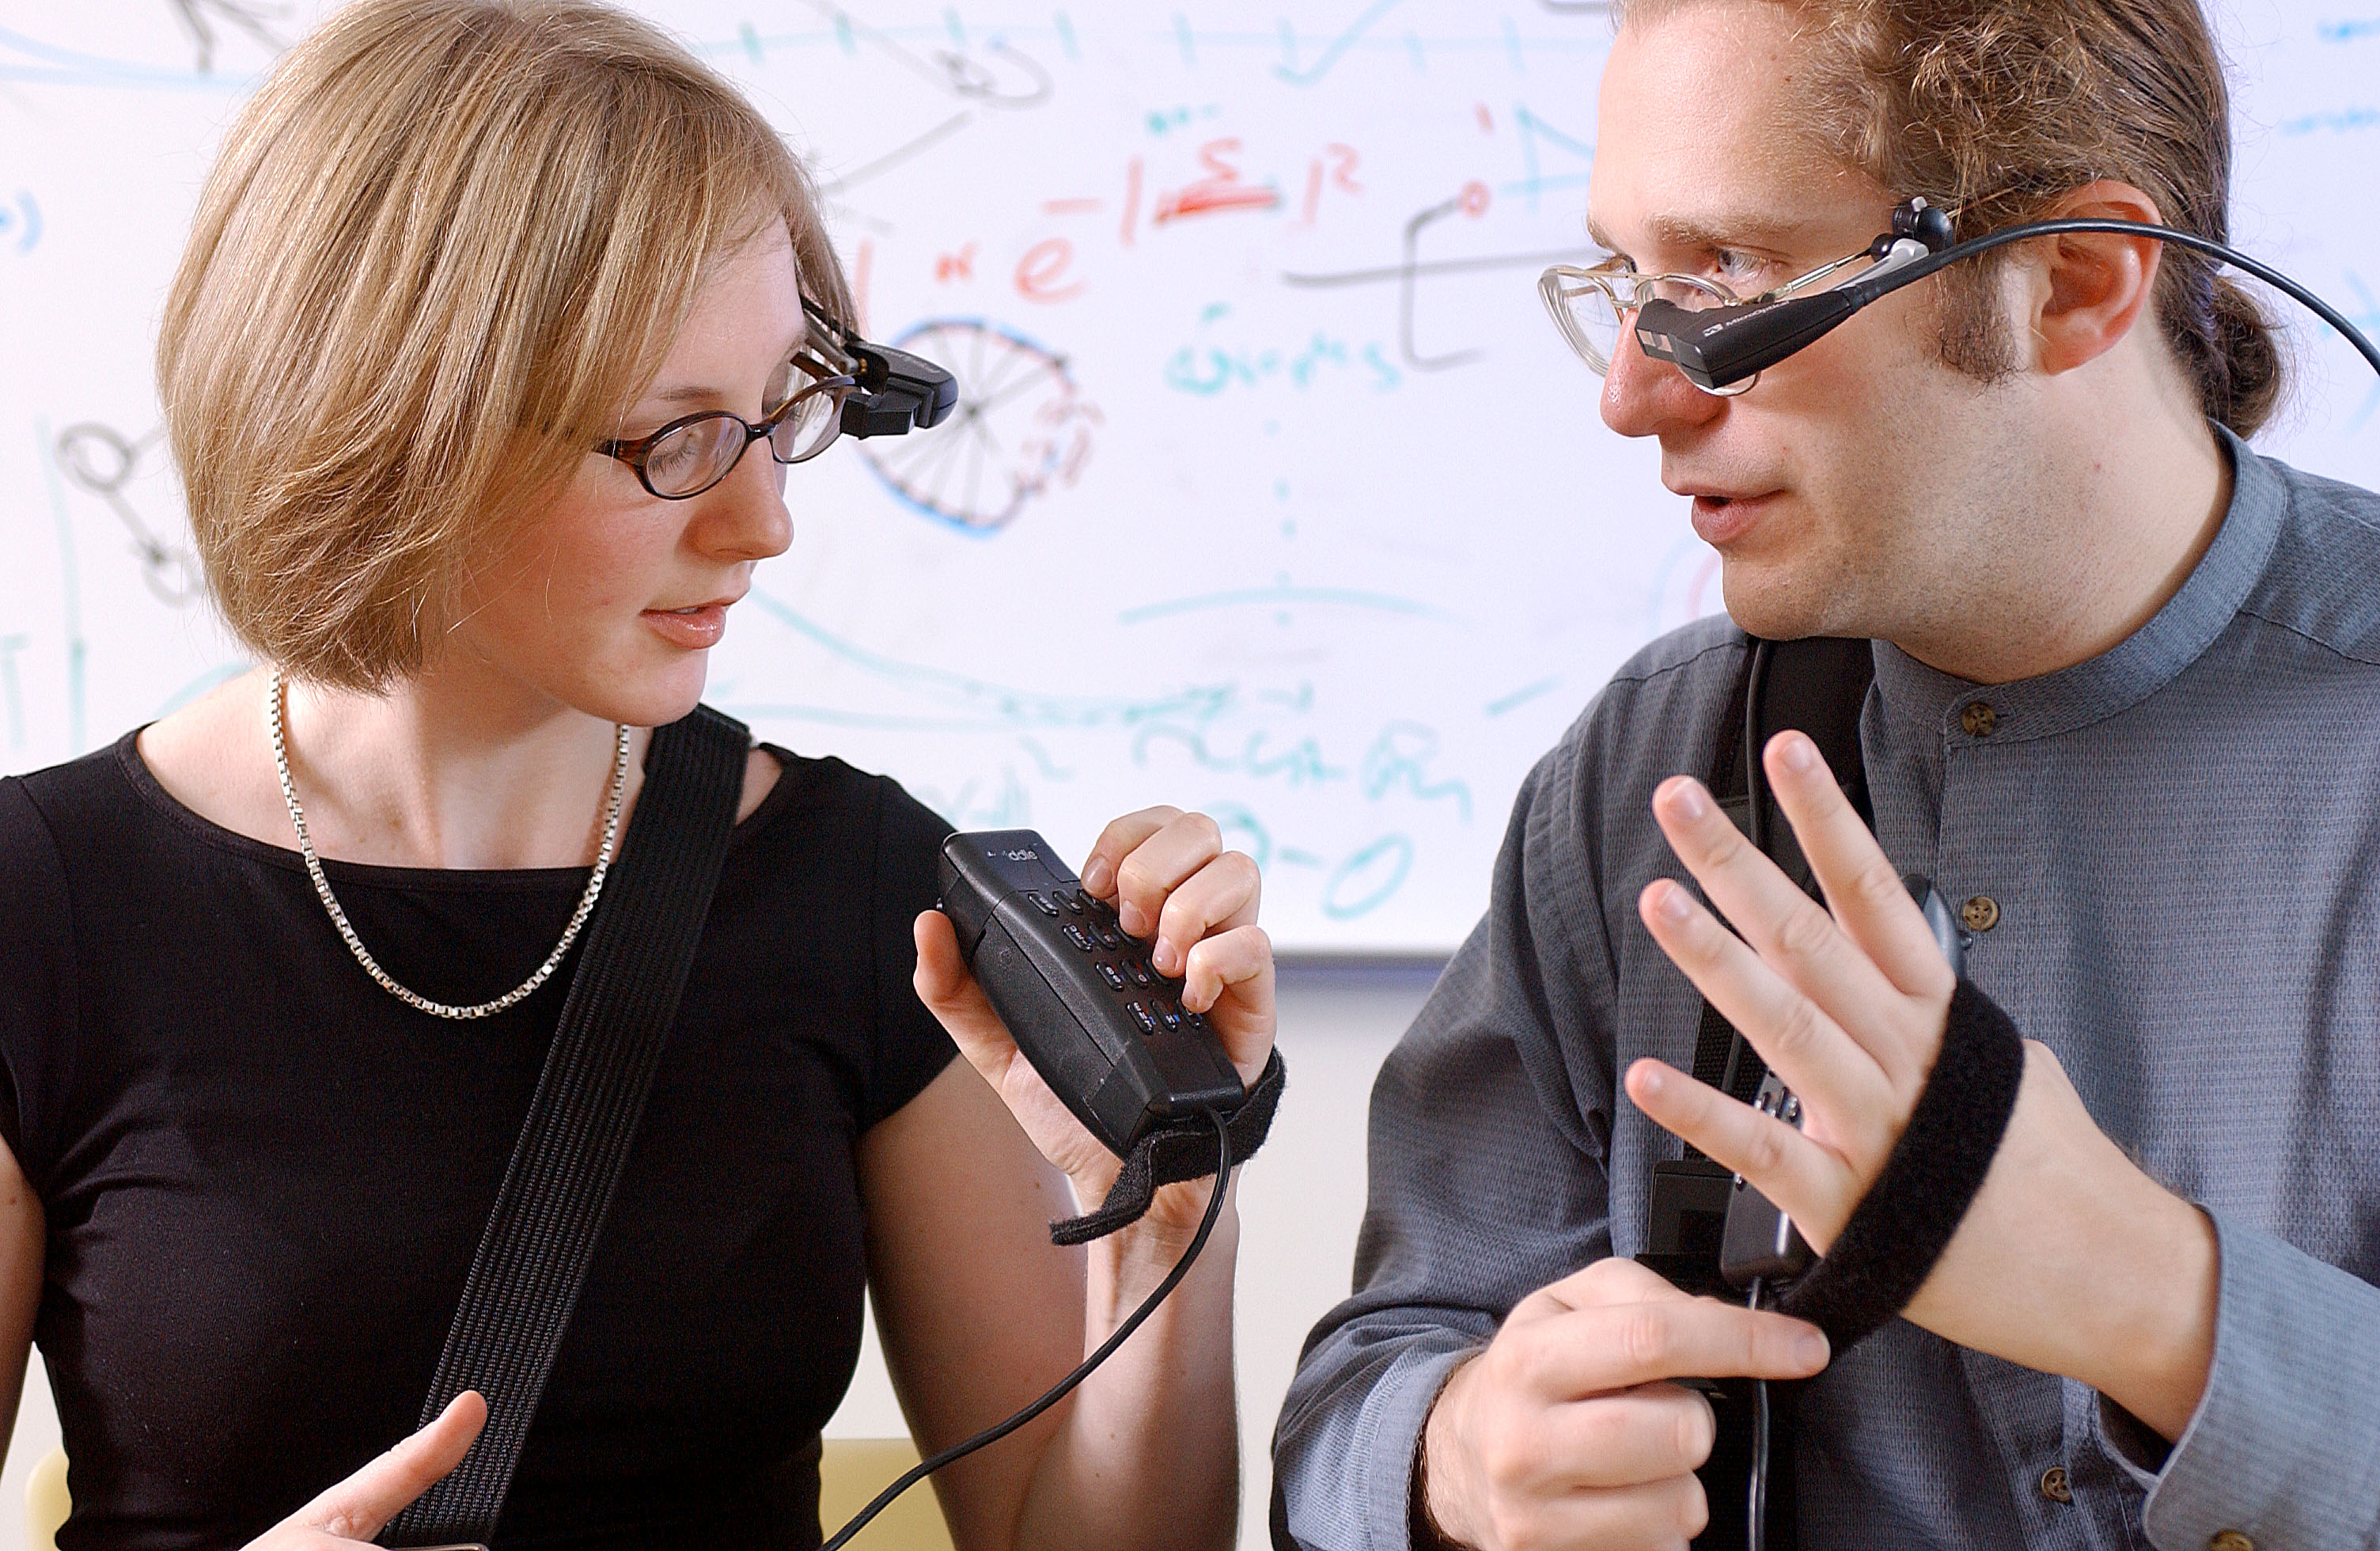 Dr. Starner Talks Wearable Computing - Mon., Nov. 16th at Noon